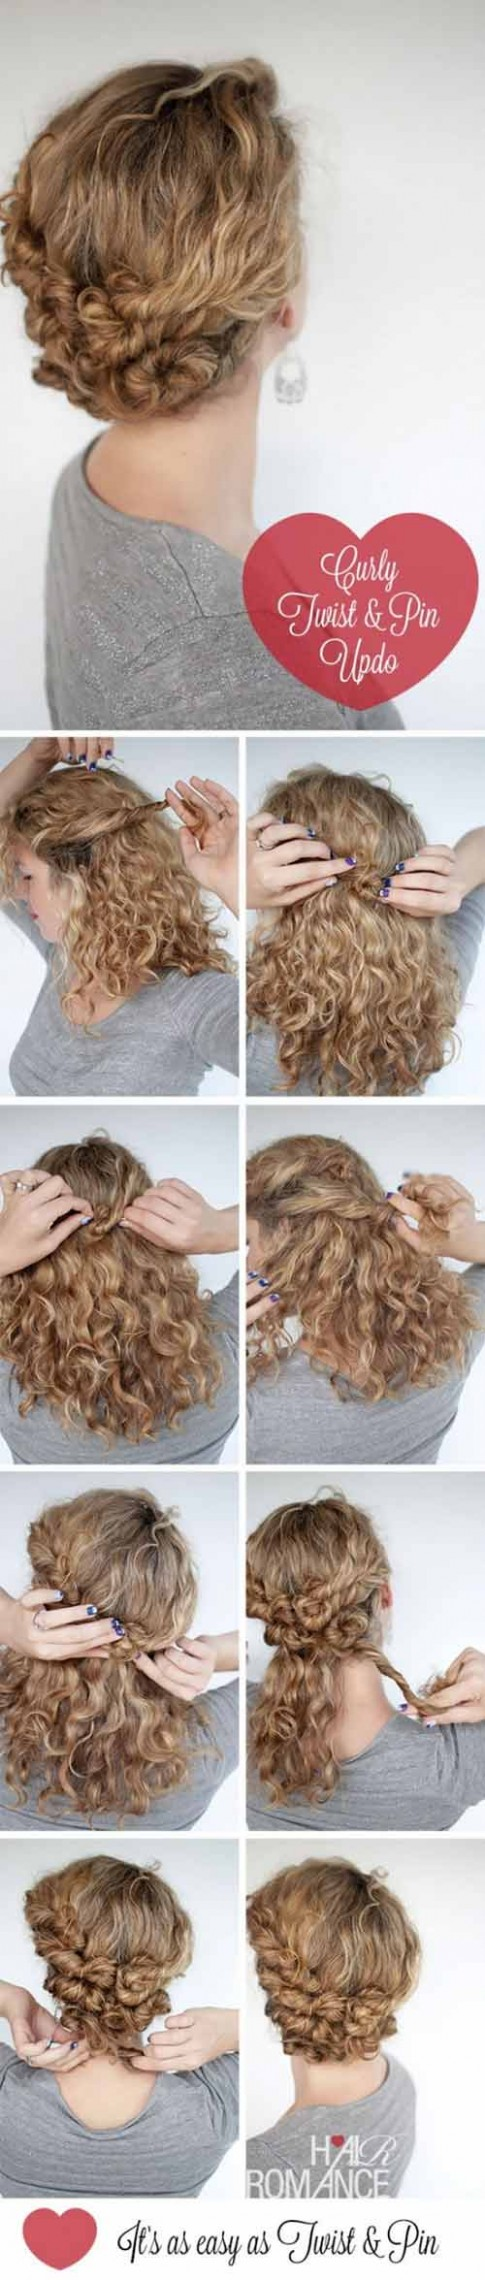 9 Incredibly Stunning DIY Updos For Curly Hair Easy Curly Hair Updos